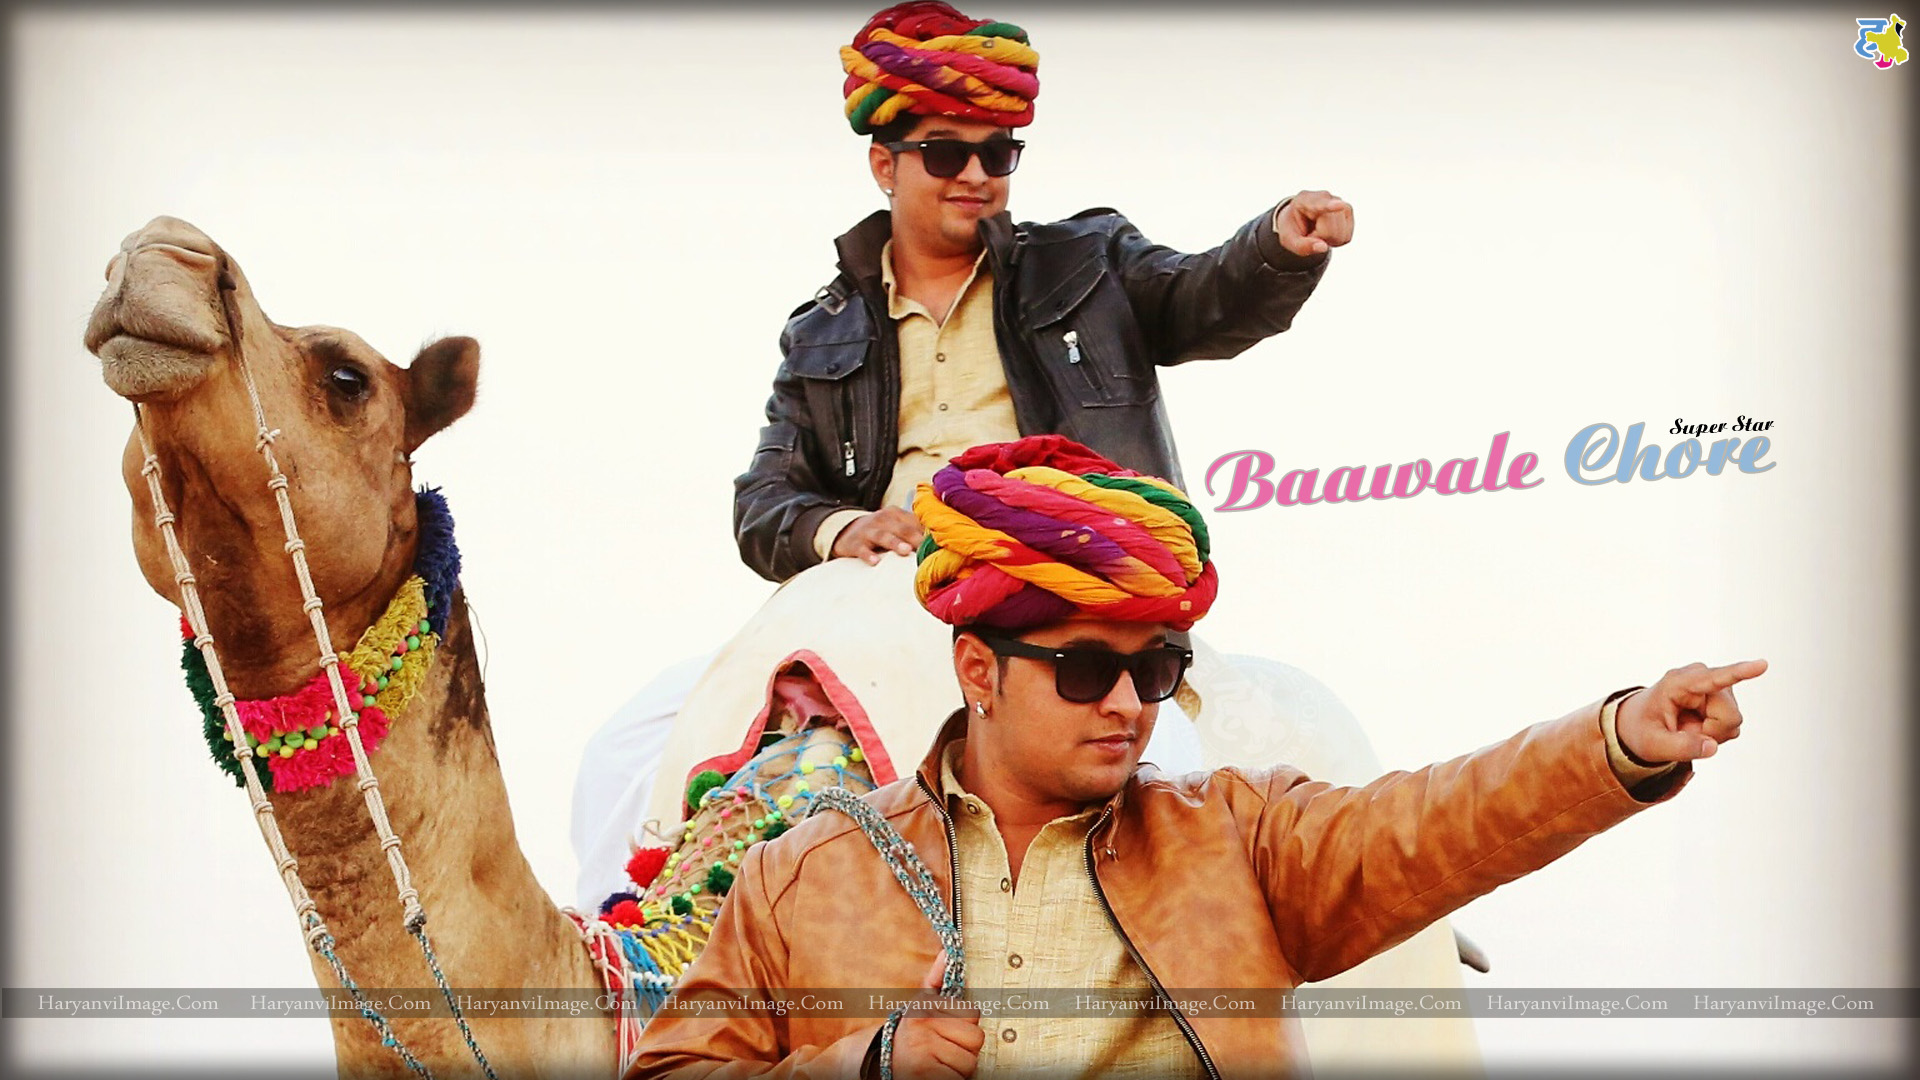 Baawale Chore HD Wallpaper